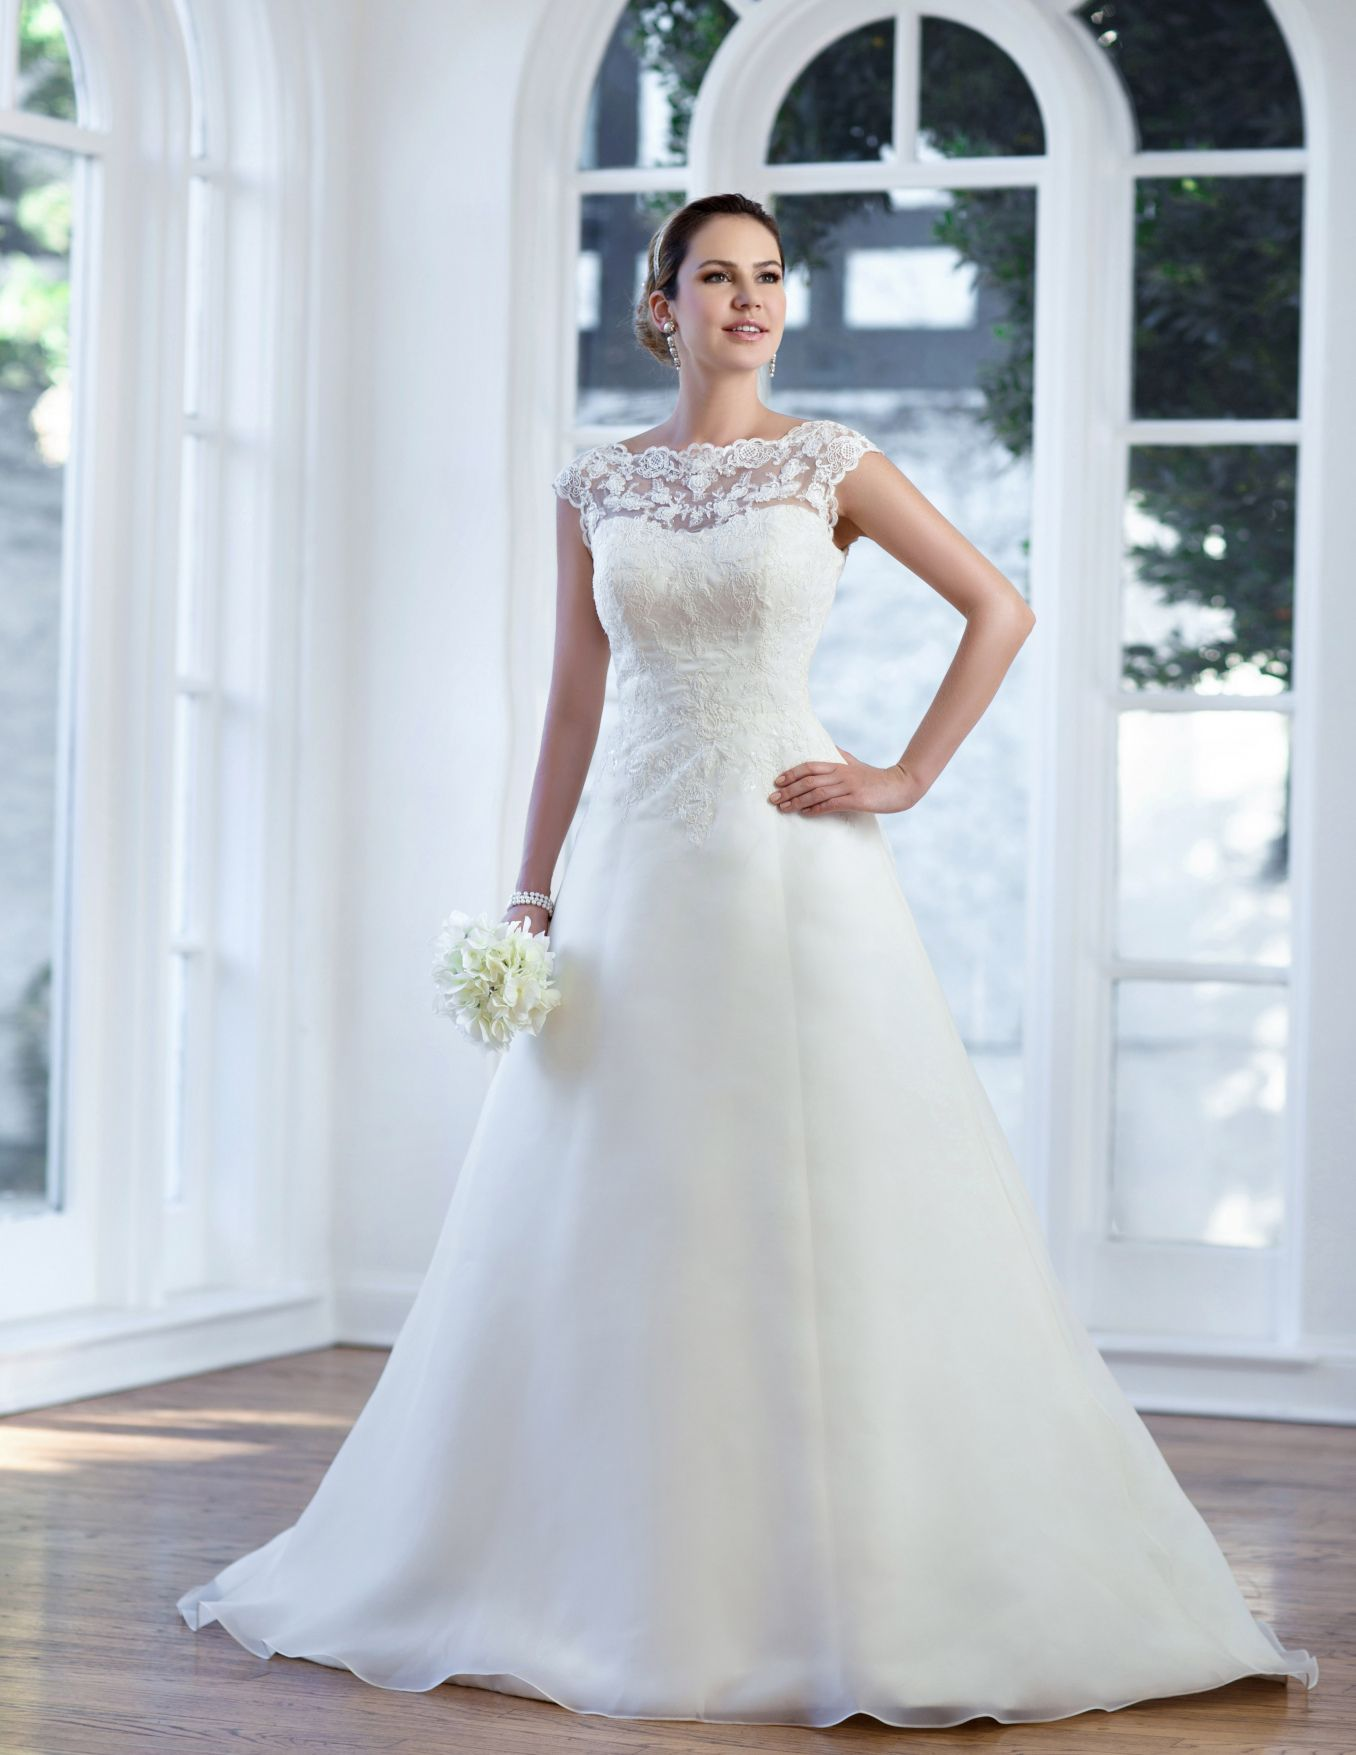 50+ Create Your Own Wedding Dress - Wedding Dresses for Plus Size ...